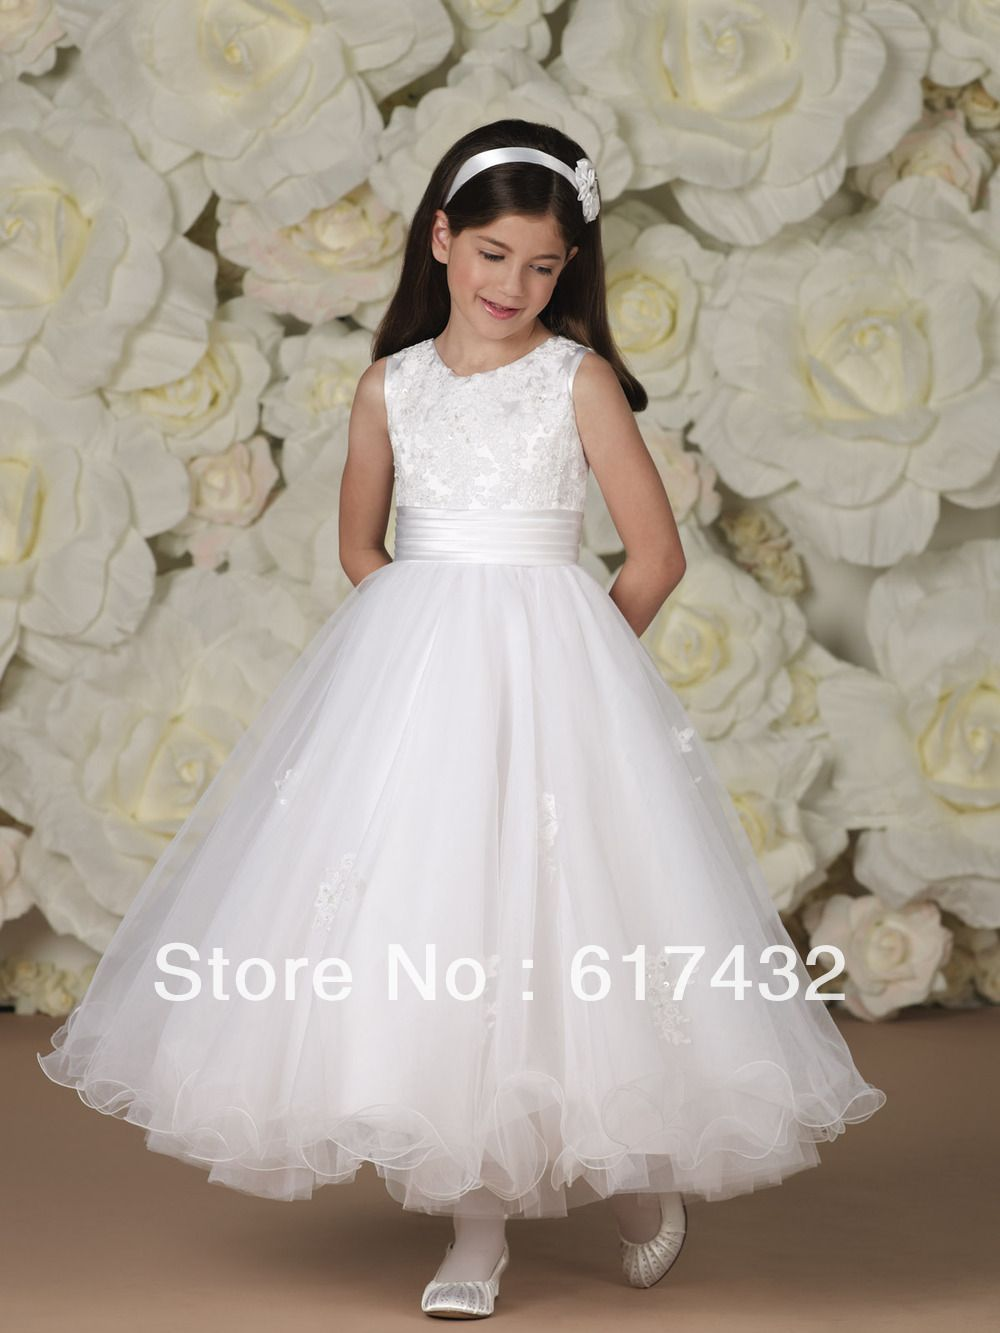 bc6f8009bf Flower Girl Dress Patterns